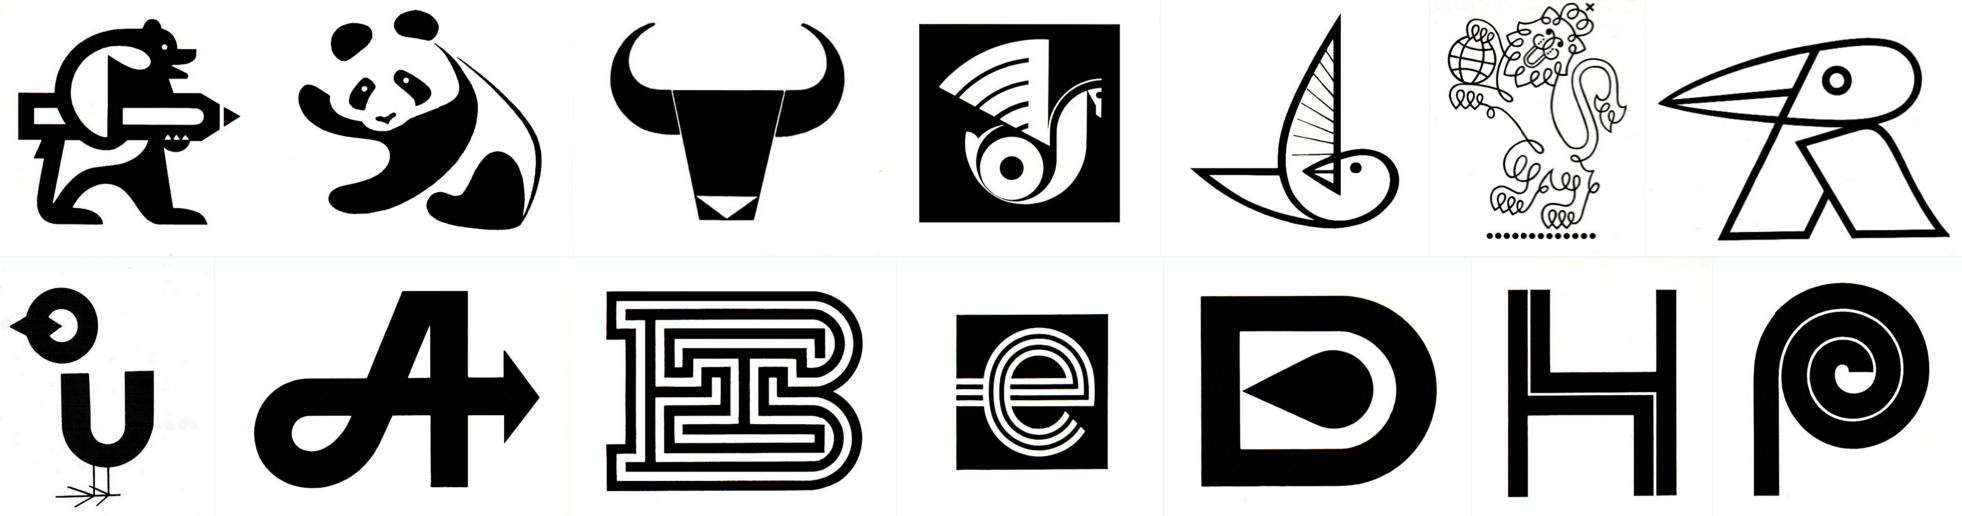 monochrome logos from the 50s and 70s hotfoot design